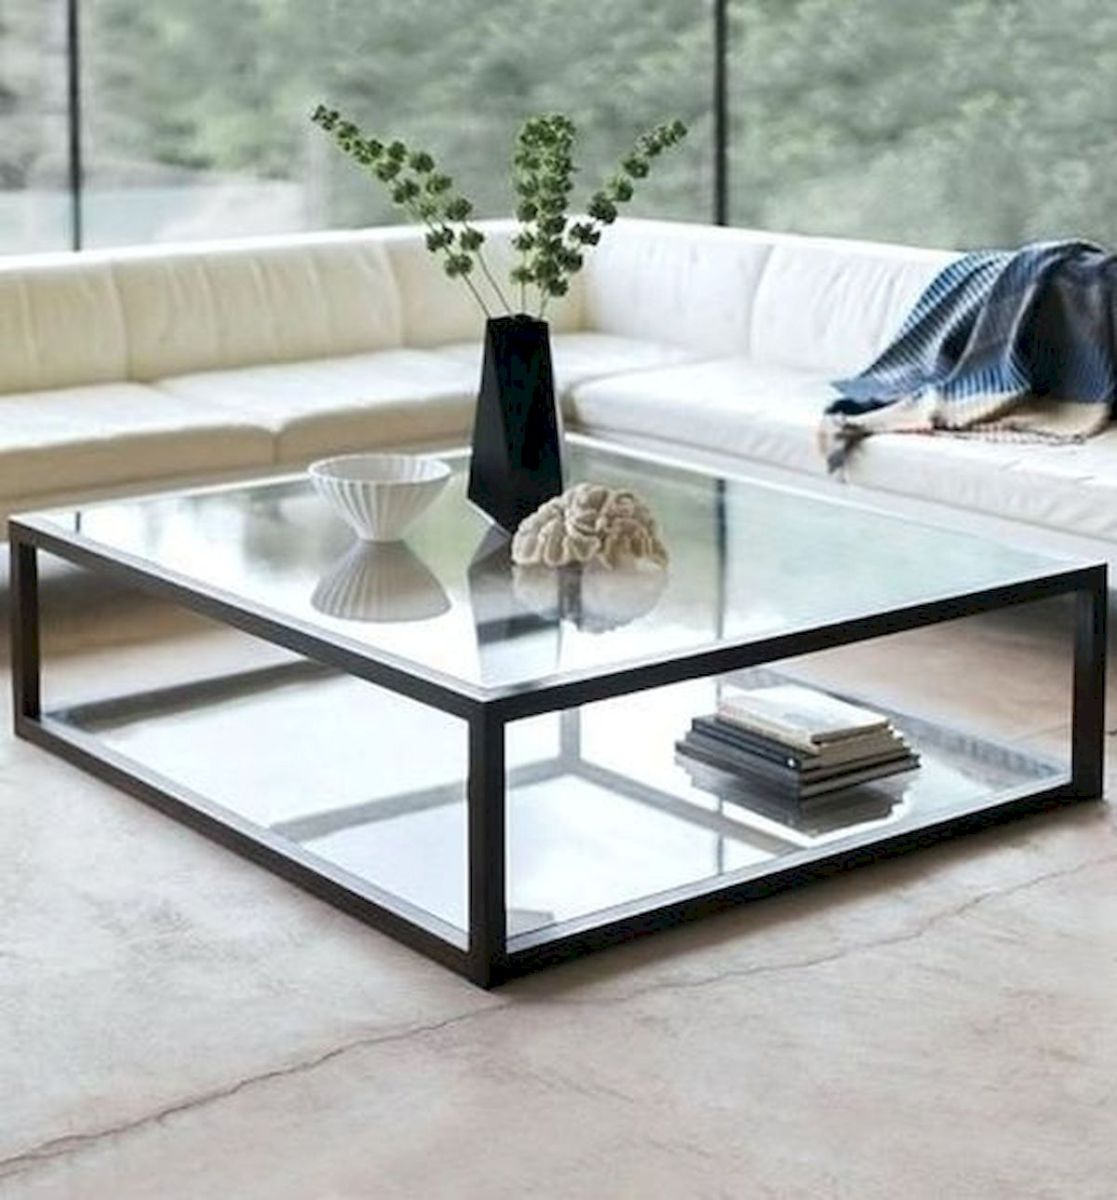 40 Awesome Modern Glass Coffee Table Design Ideas For Your Living Room (9)